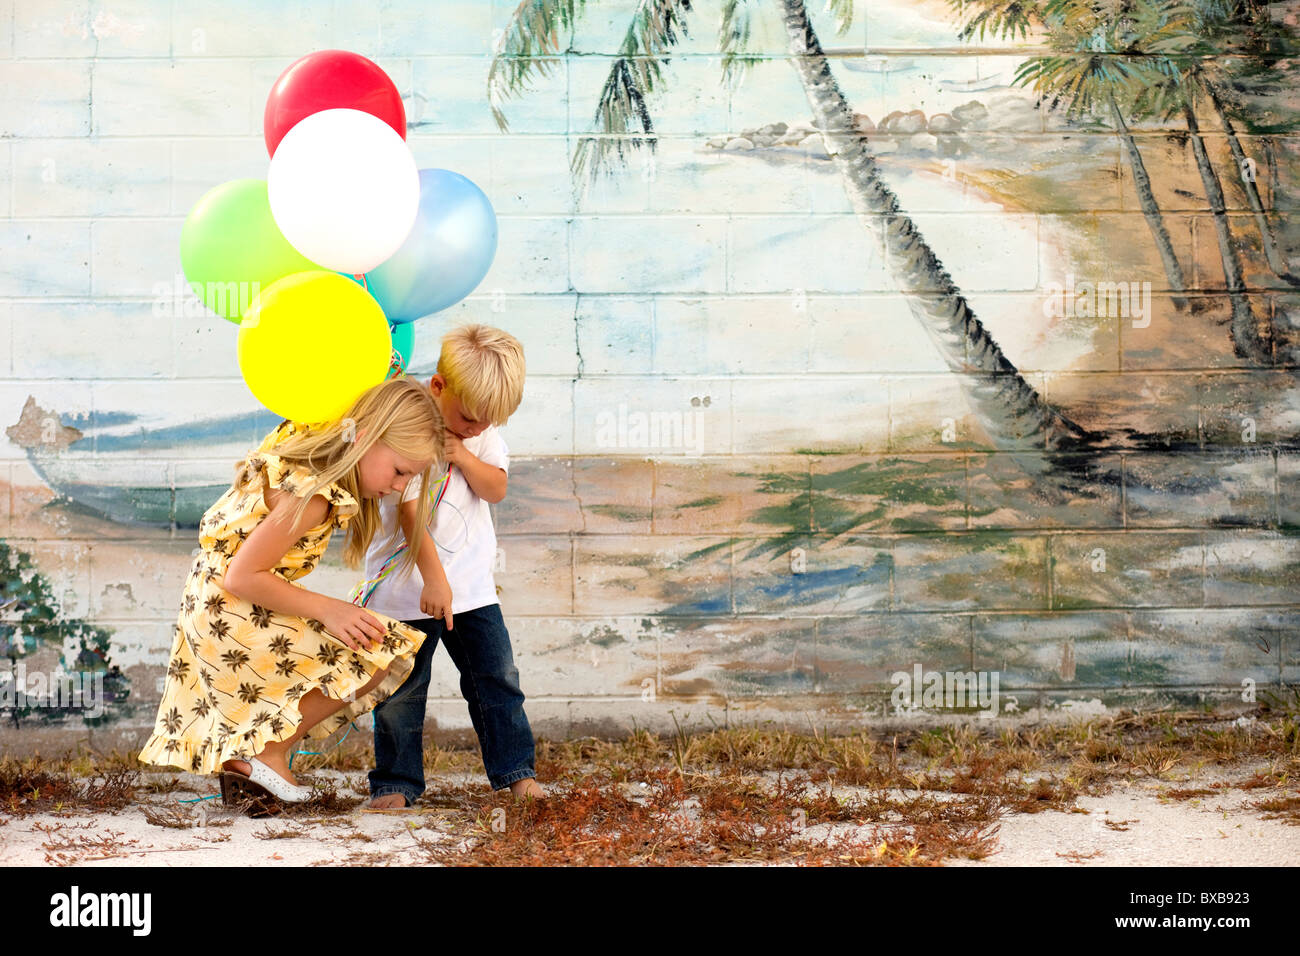 Young boy and girl with balloons looking at ground - Stock Image